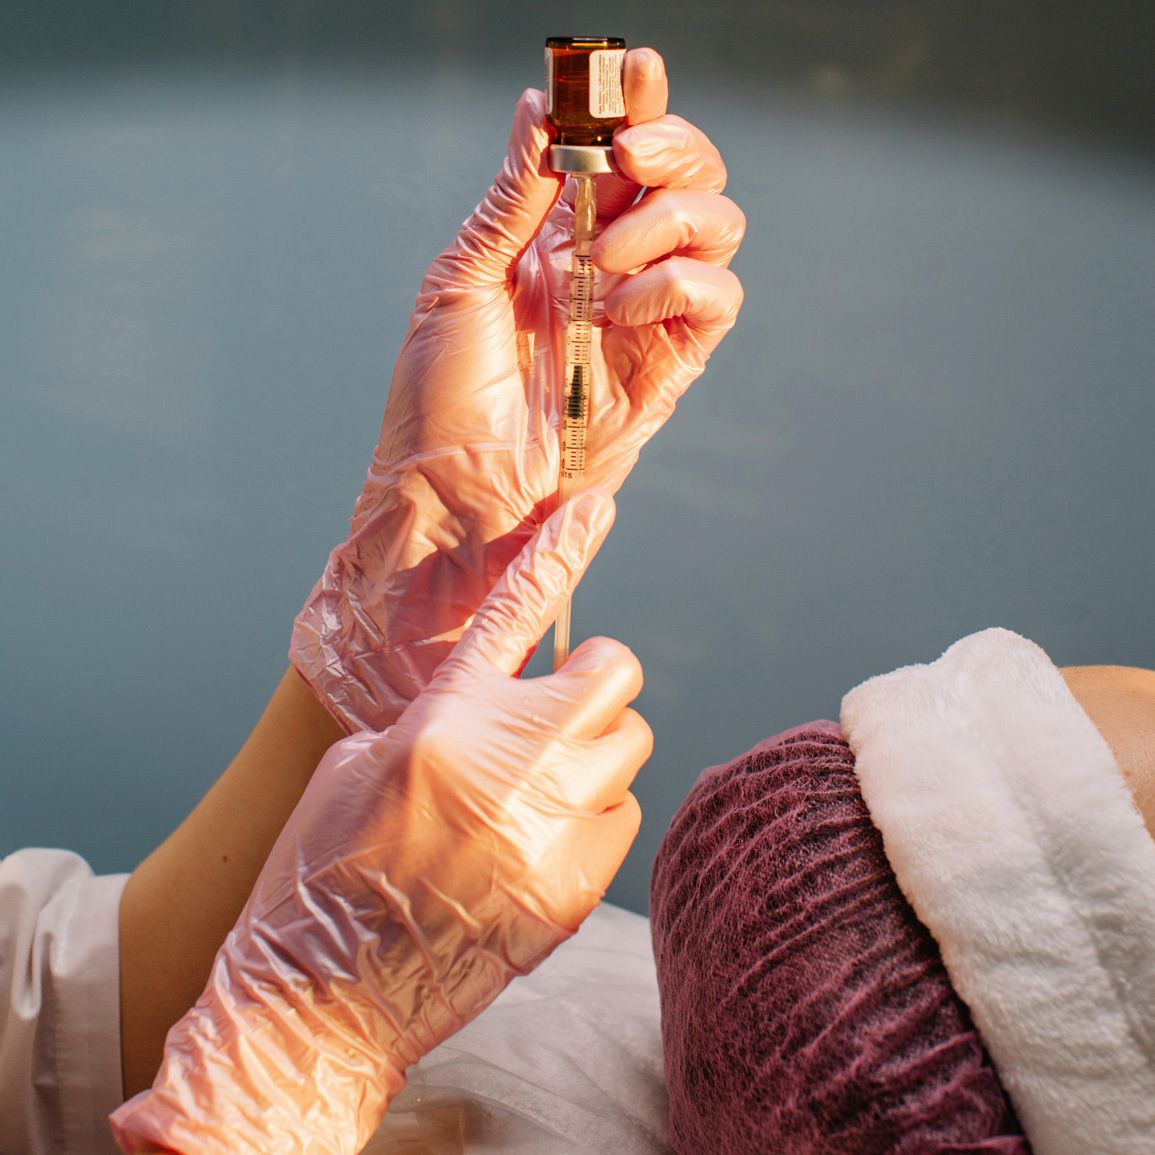 A woman holds a syringe and vial.